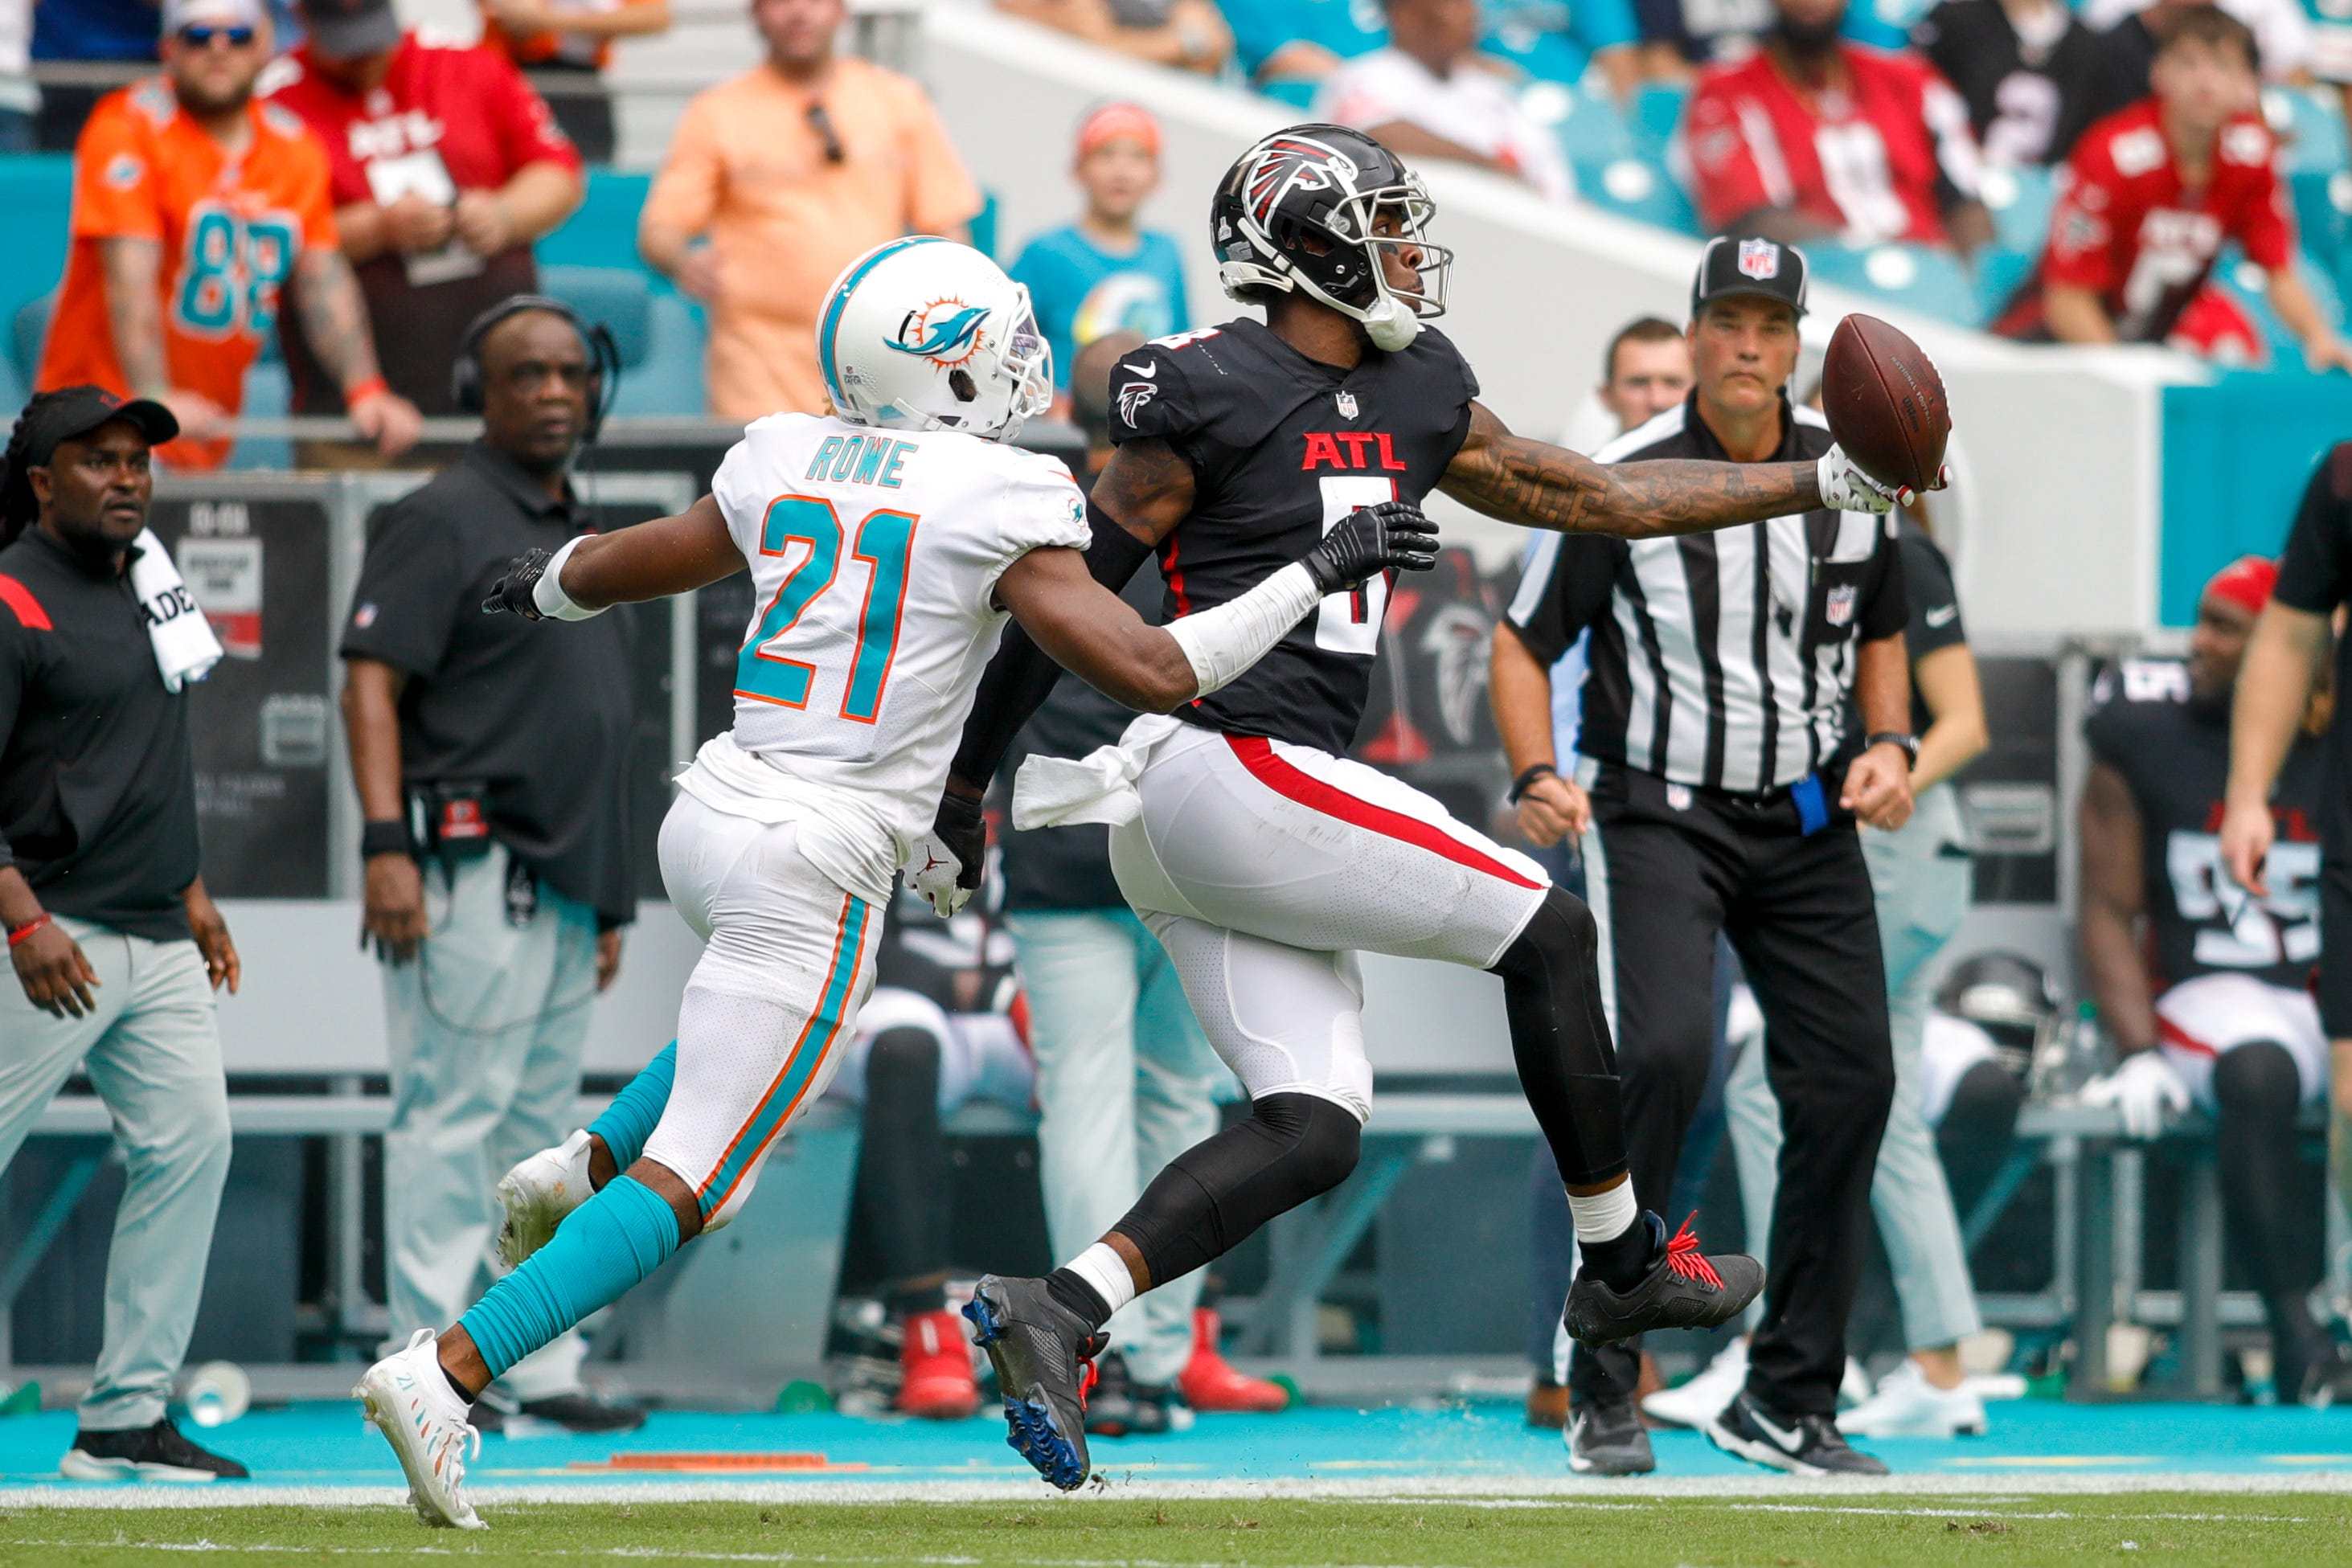 Kyle Pitts' two catches on Falcons game-winning drive caps big day against Dolphins